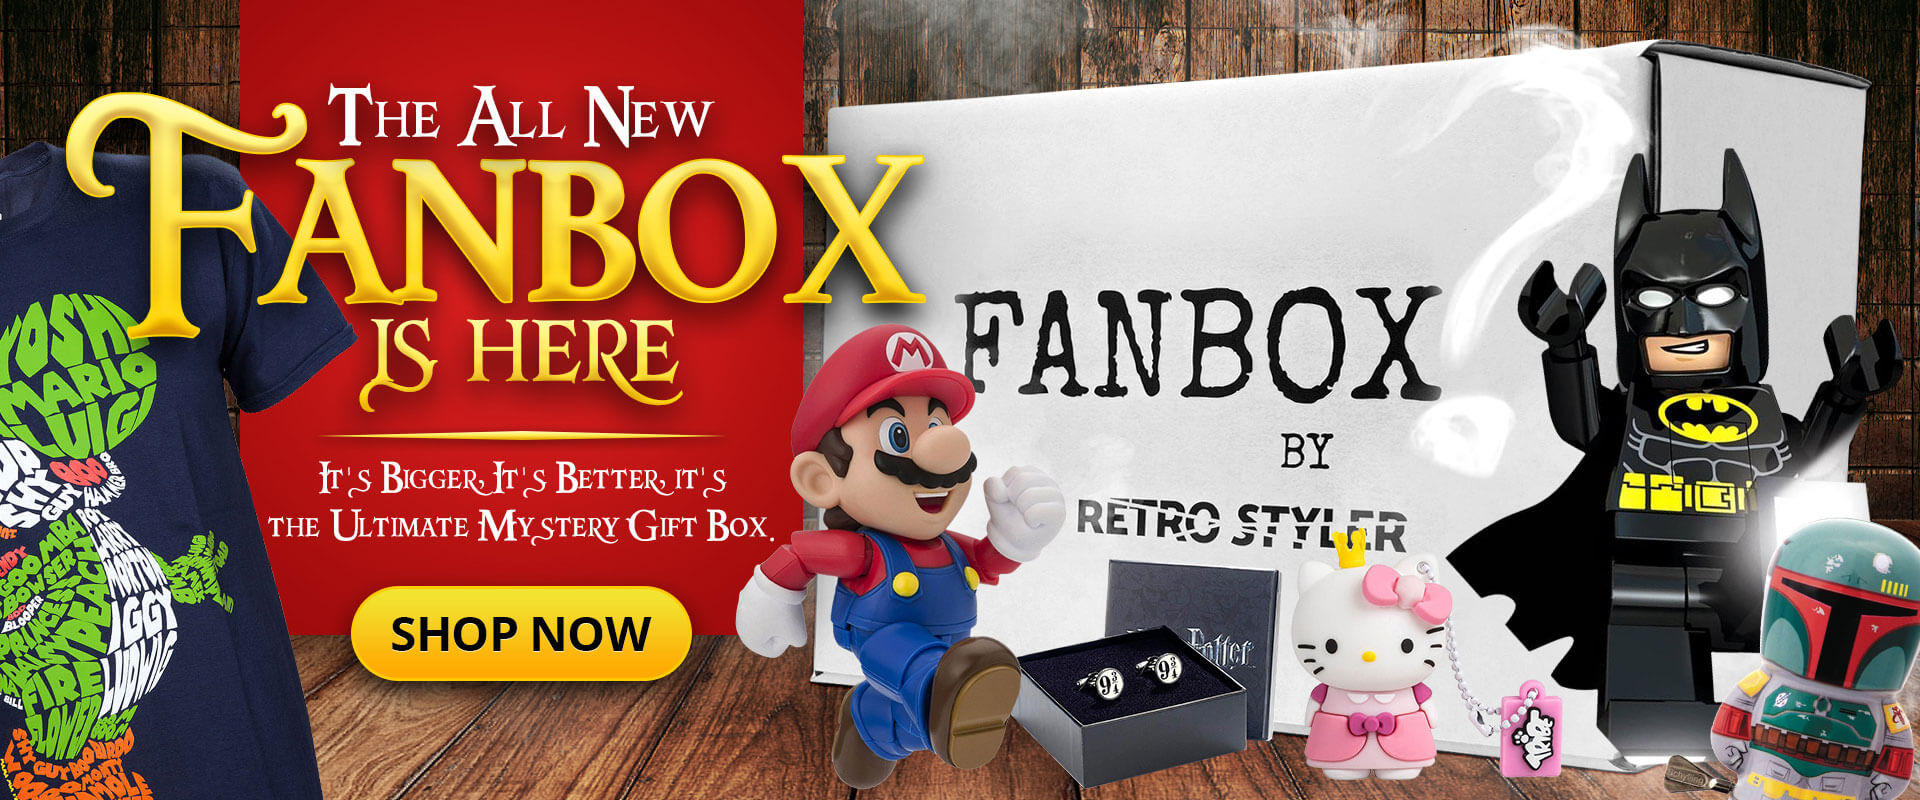 Shop for Fanboxes here